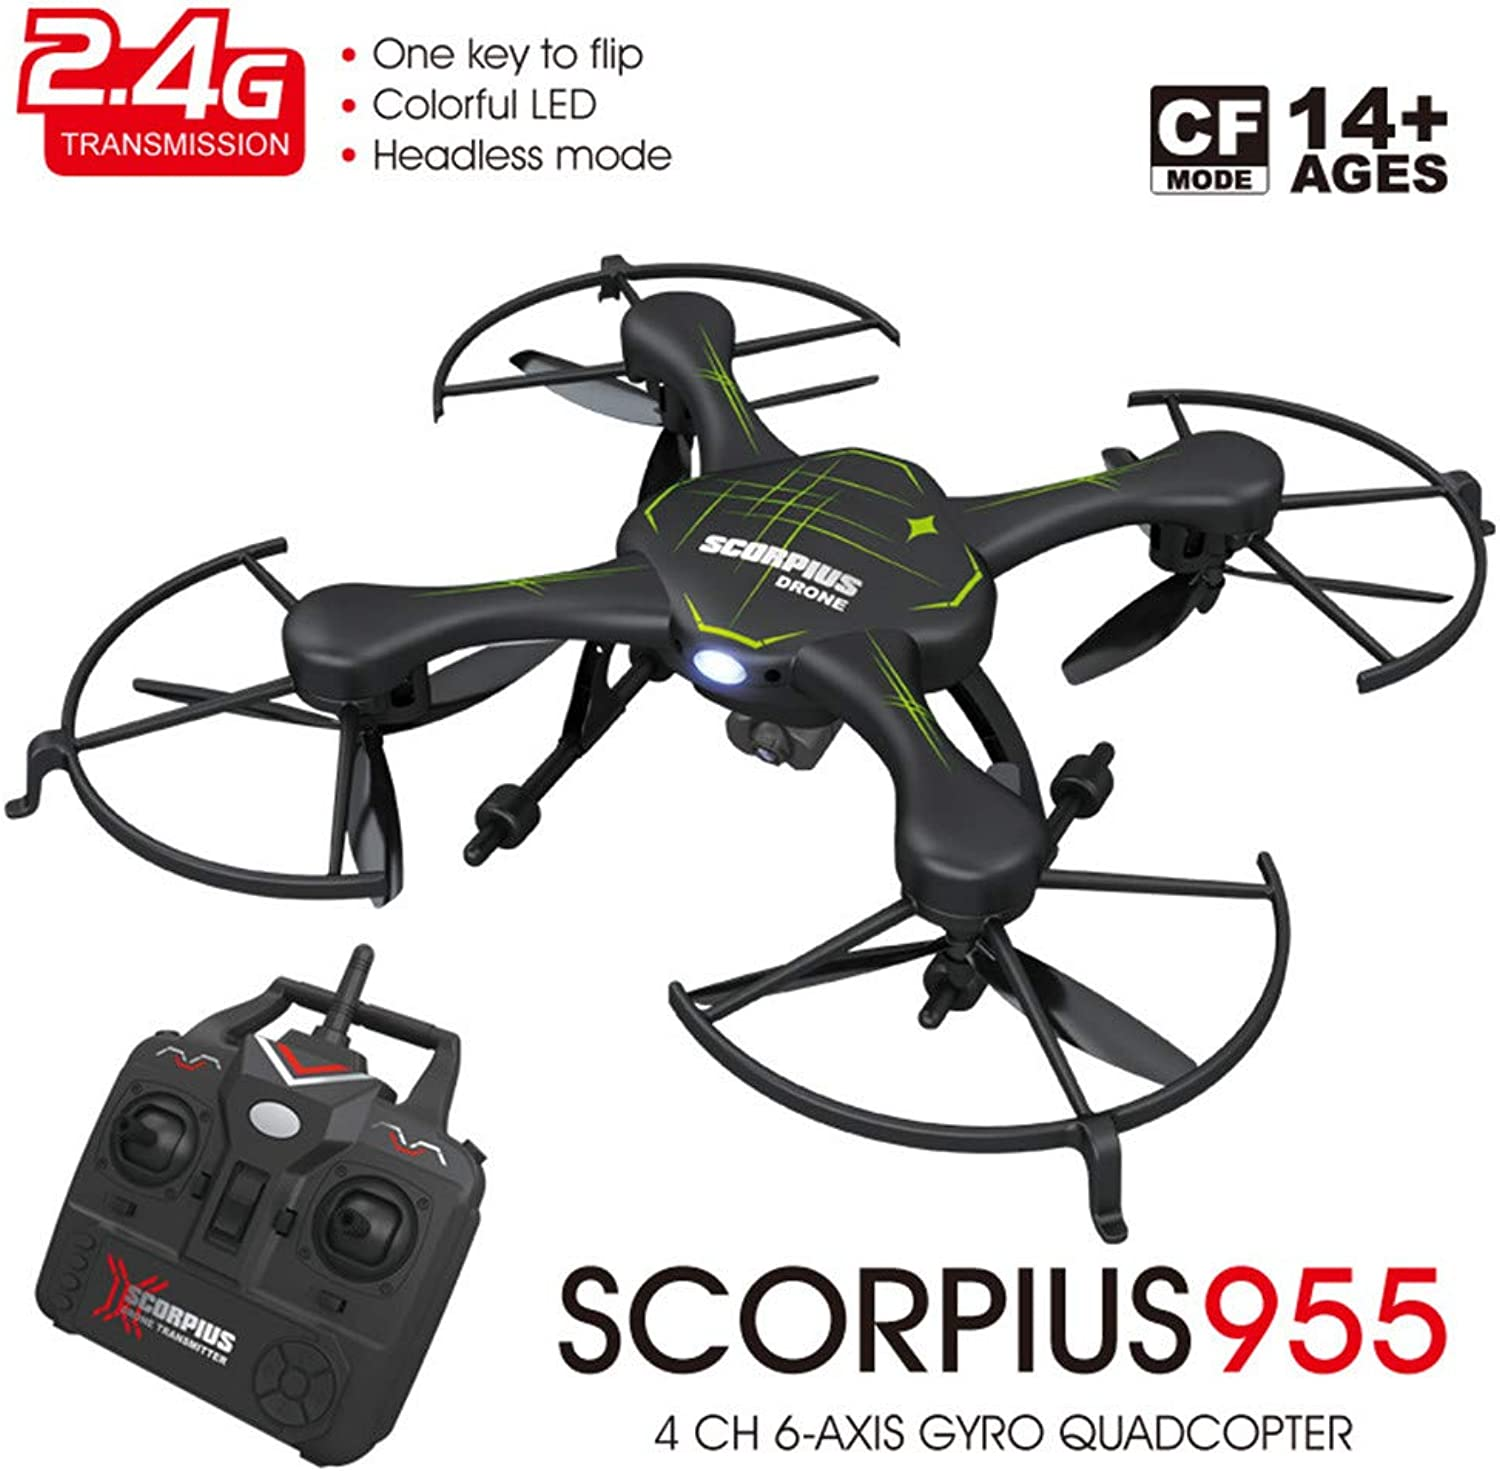 TONGTONG Drohne mit Kamera, Arme RC Drone mit Wi-Fi-Kamera Quadcopter Altitude Hold, Headless Mode, 3D Filp, One Key Return Easy Operation für Kinder und Anfnger